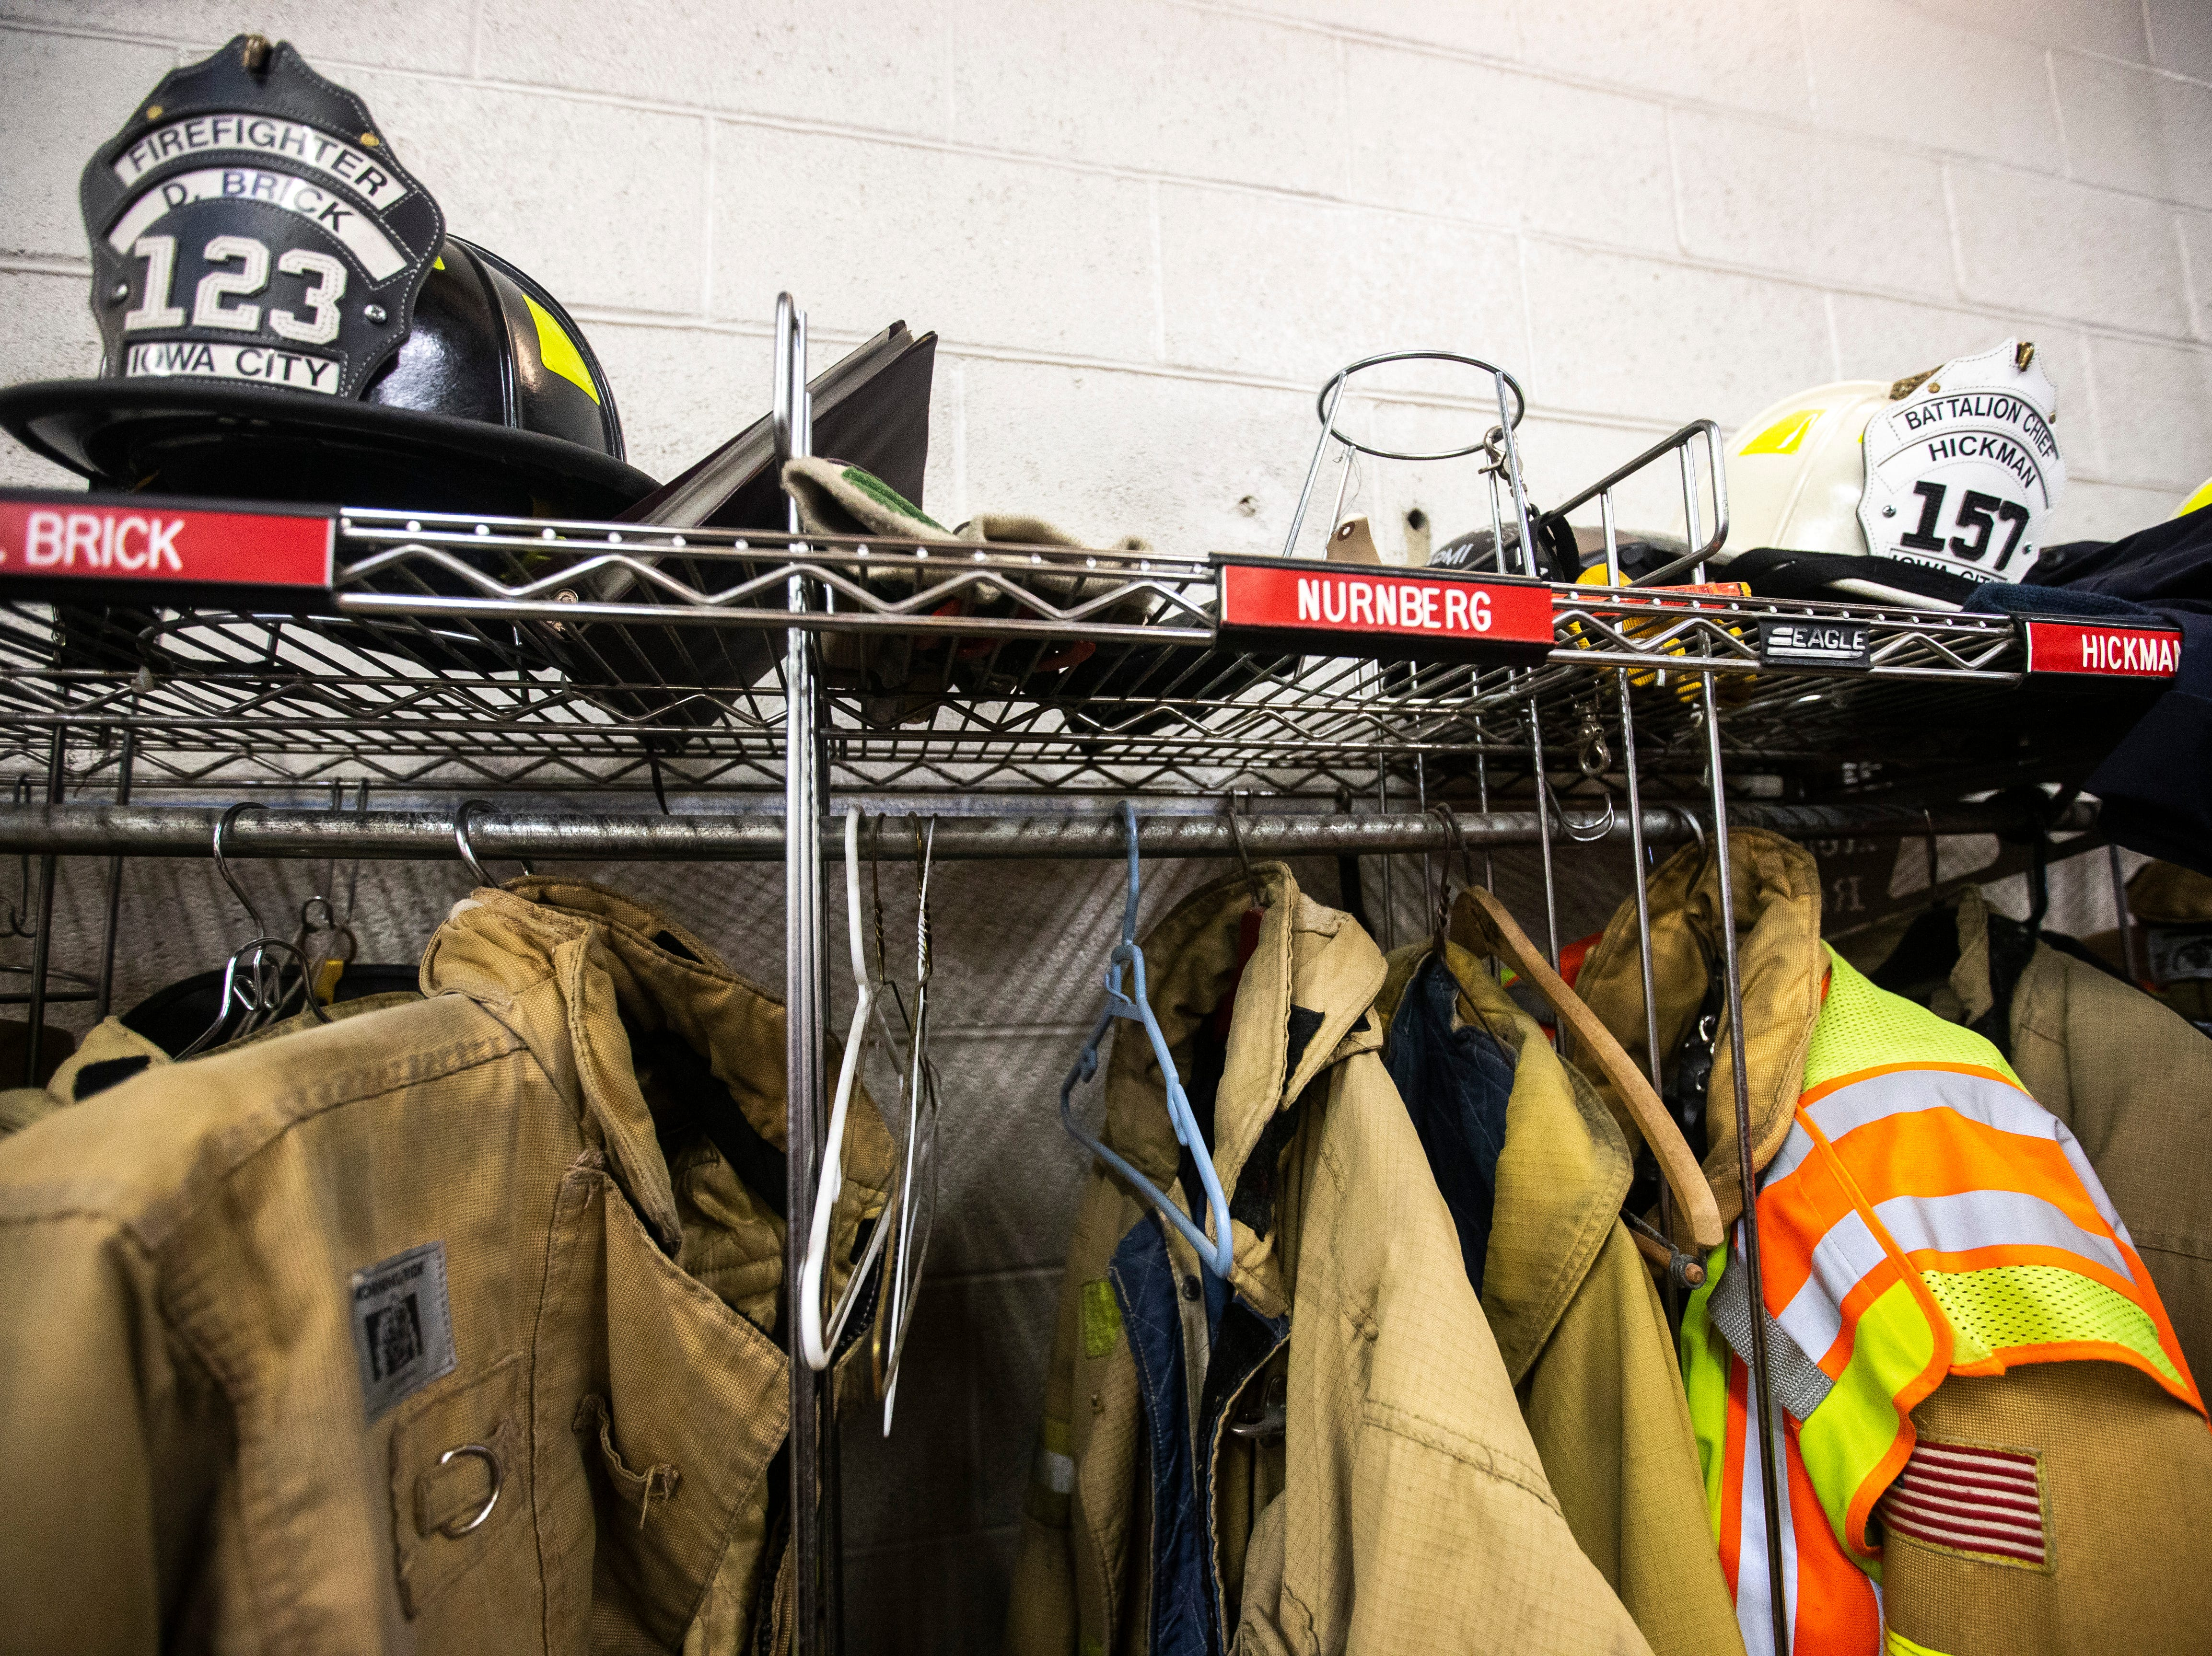 Equipment hangs in the garage on Thursday, March 7, 2019, inside Fire Station No. 1, at 10 South Gilbert Street in downtown Iowa City, Iowa. The station was opened January 1, 1961, the same day the previous station of 80 years was retired.